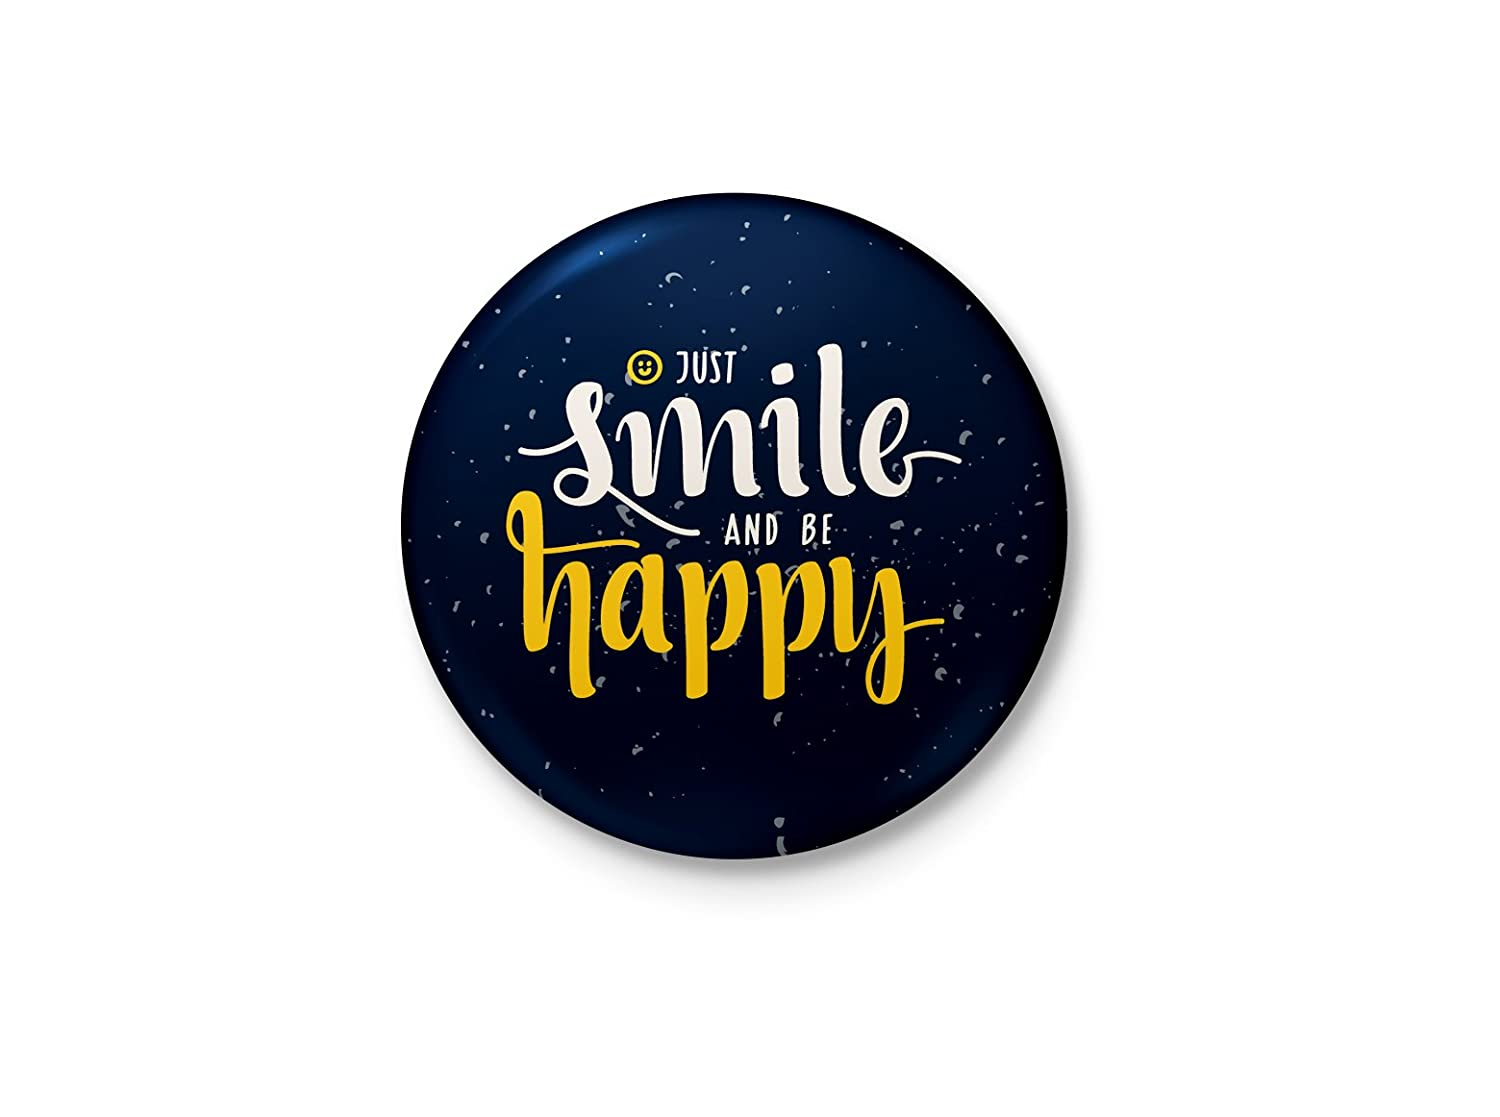 6dbd2585a8765 Buy Alter Ego Just Smile and Be Happy Badge with Safety-Pin Back Online at  Low Prices in India - Amazon.in